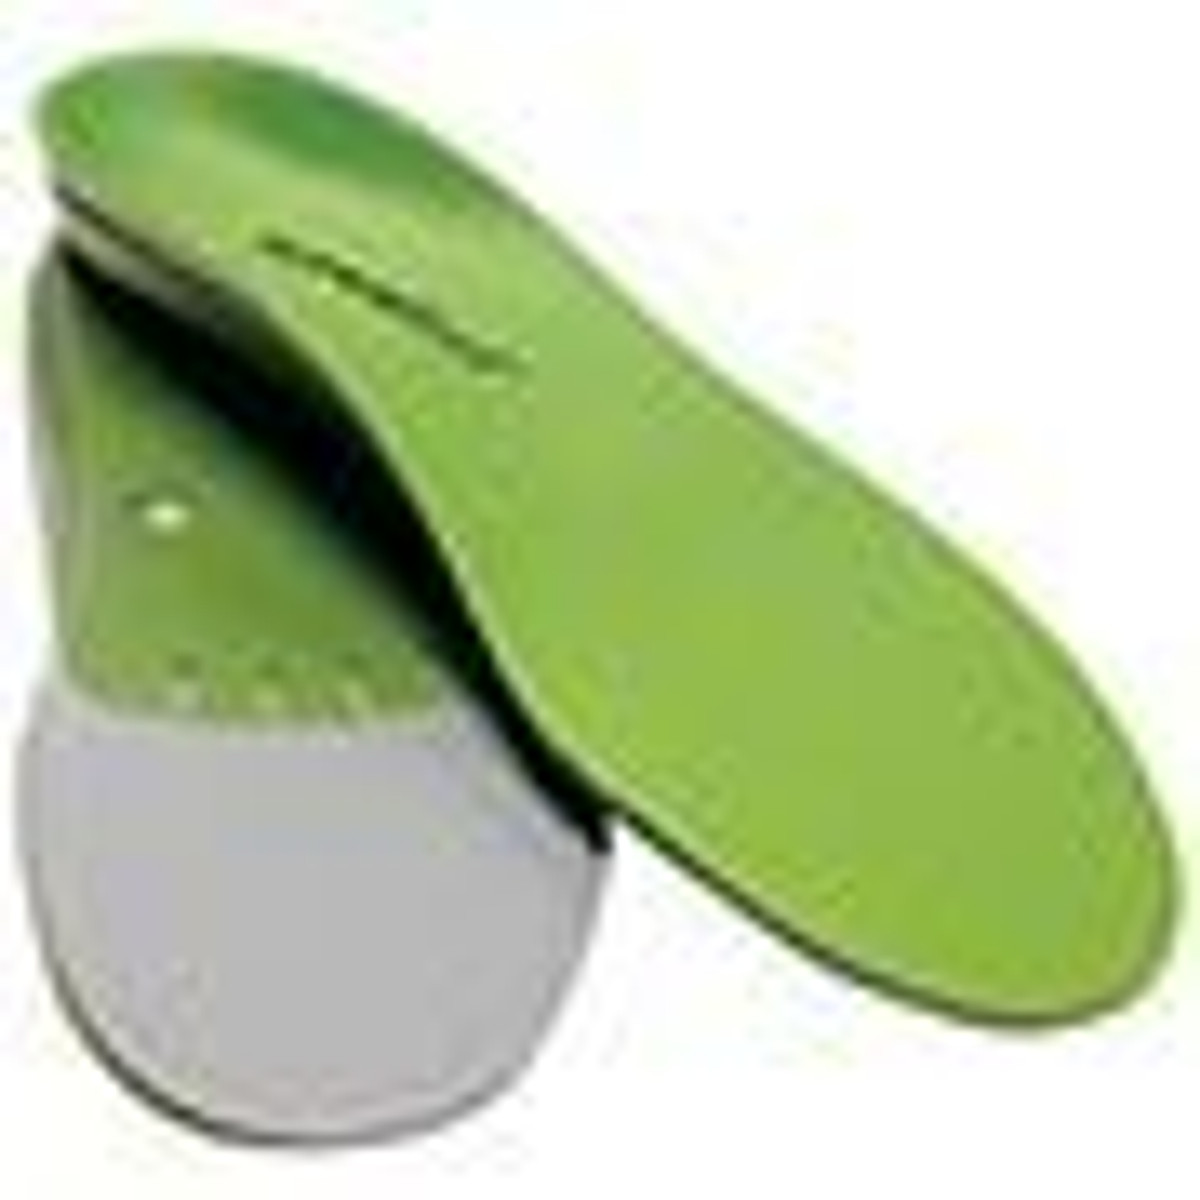 Insoles, Inserts, and Liners